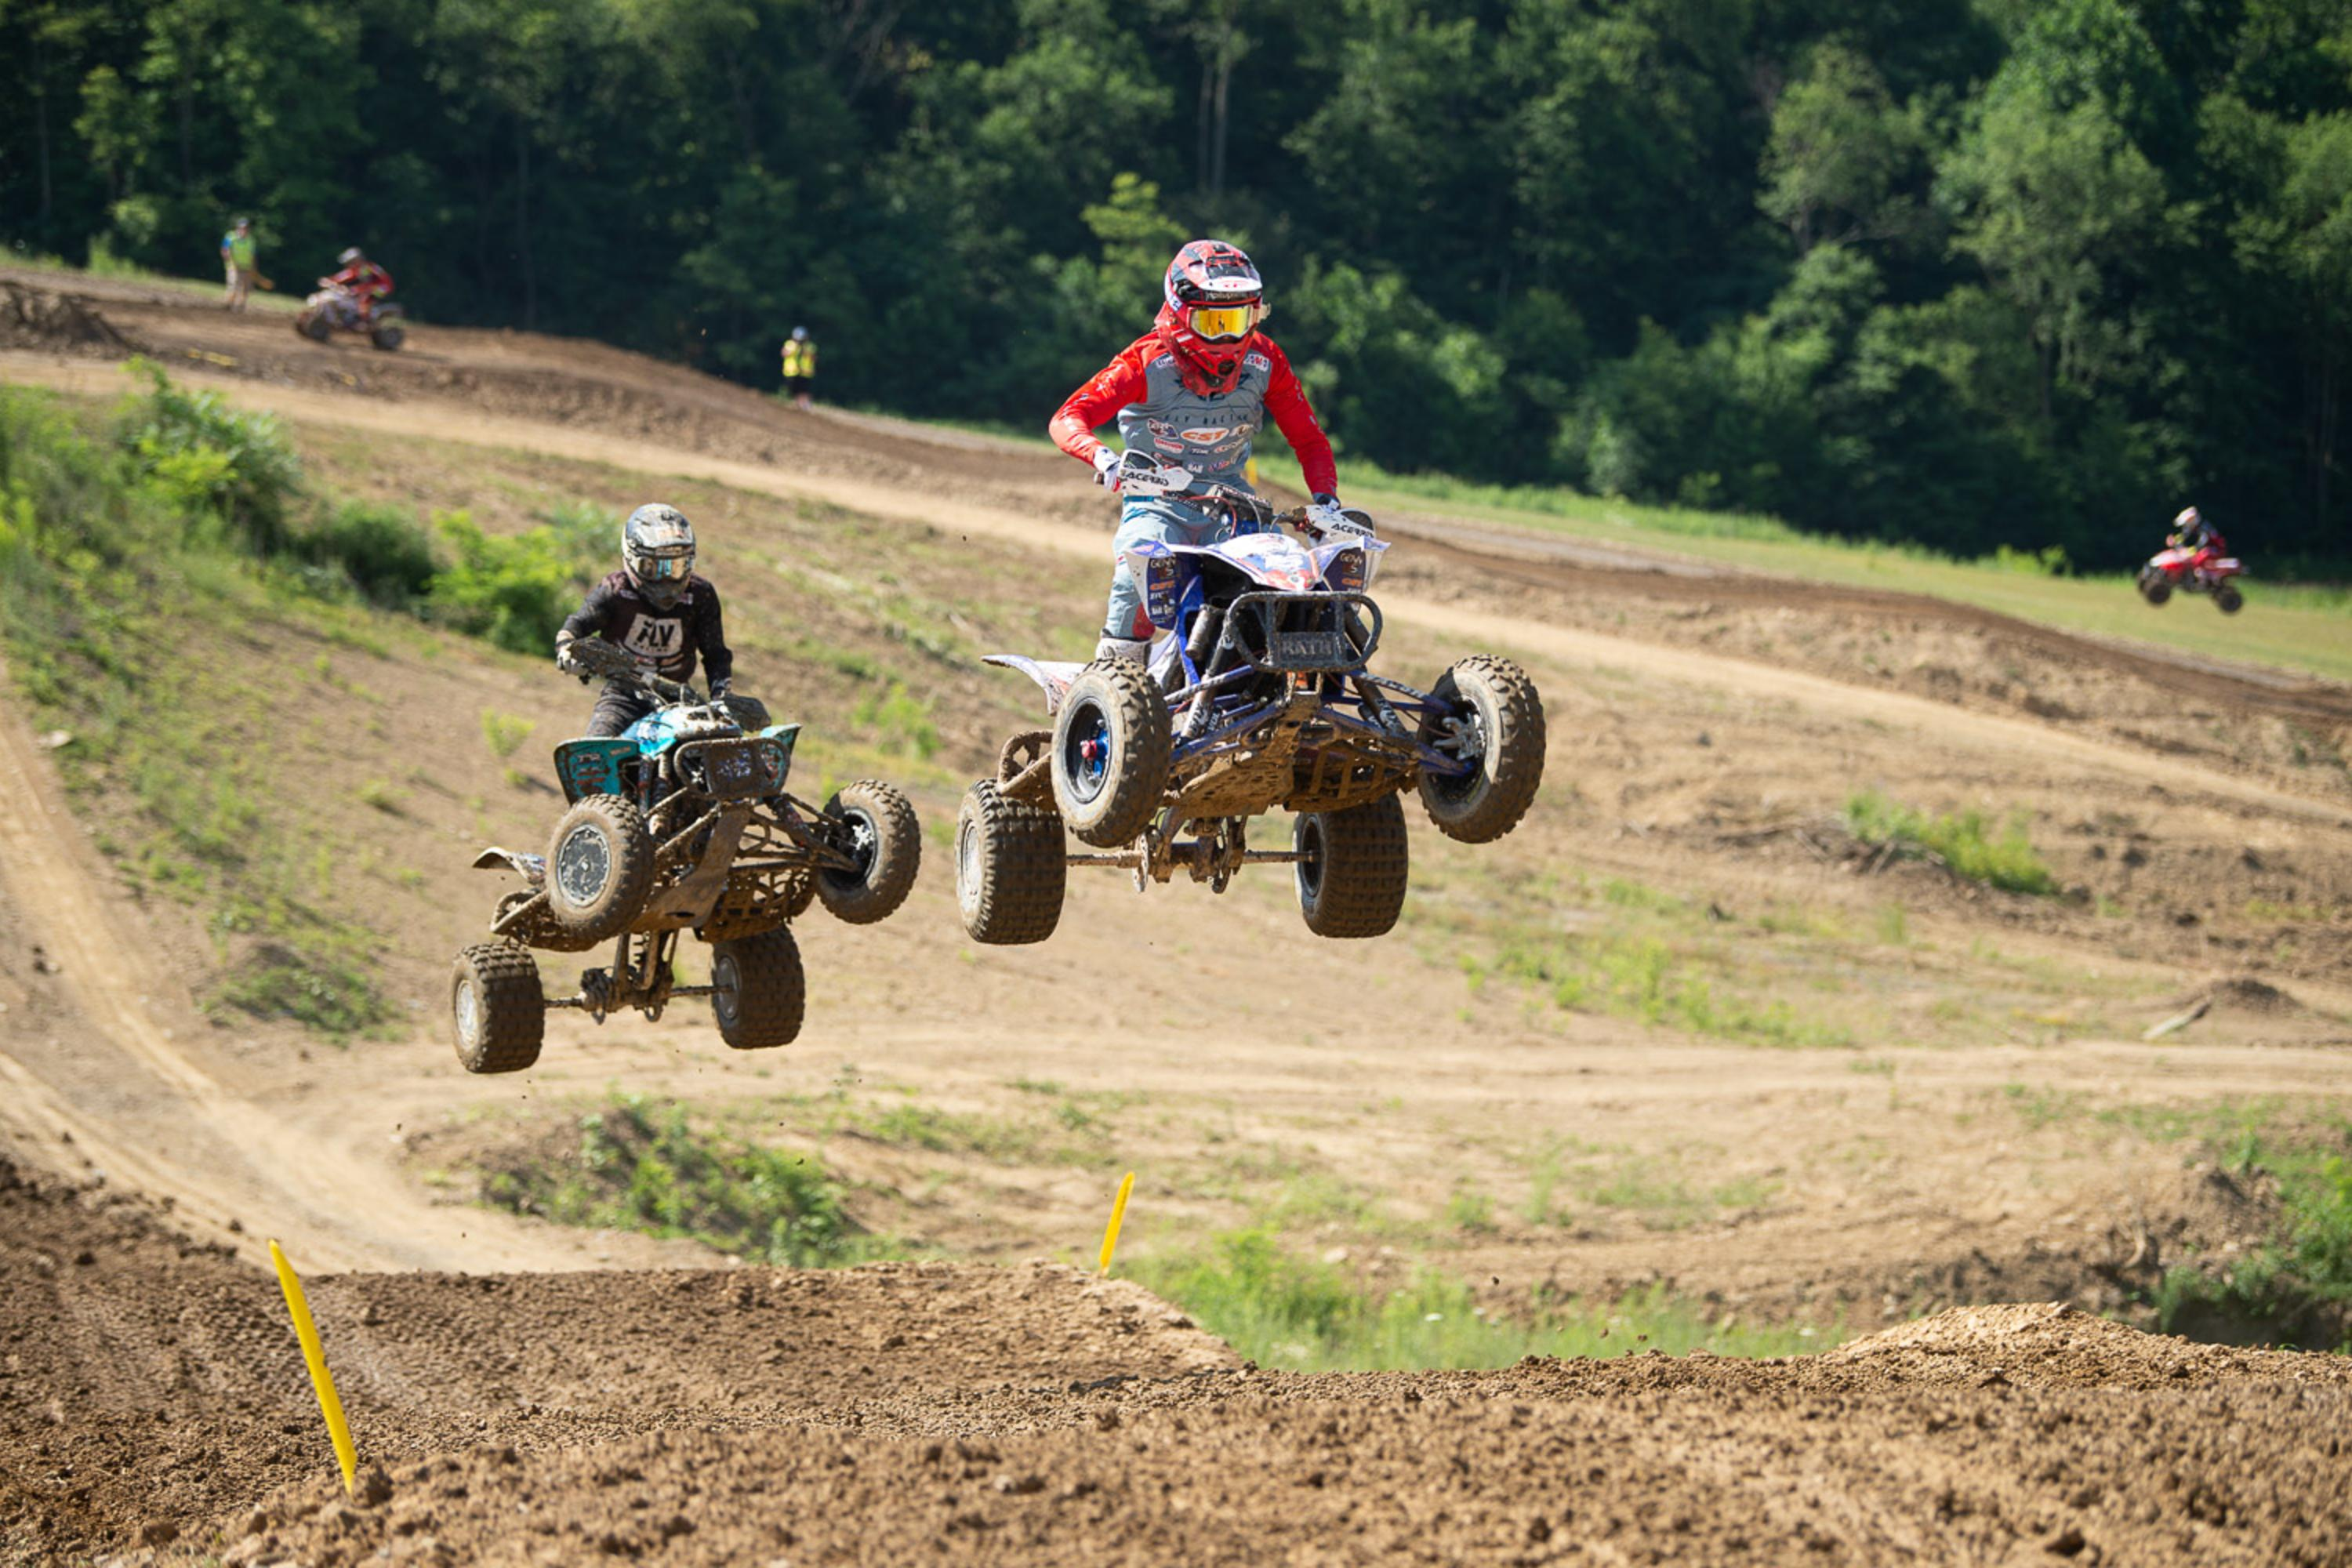 RLT Competition Bulletin 2020-15: Updates to Pro Motocross, GNCC and ATVMX Schedules